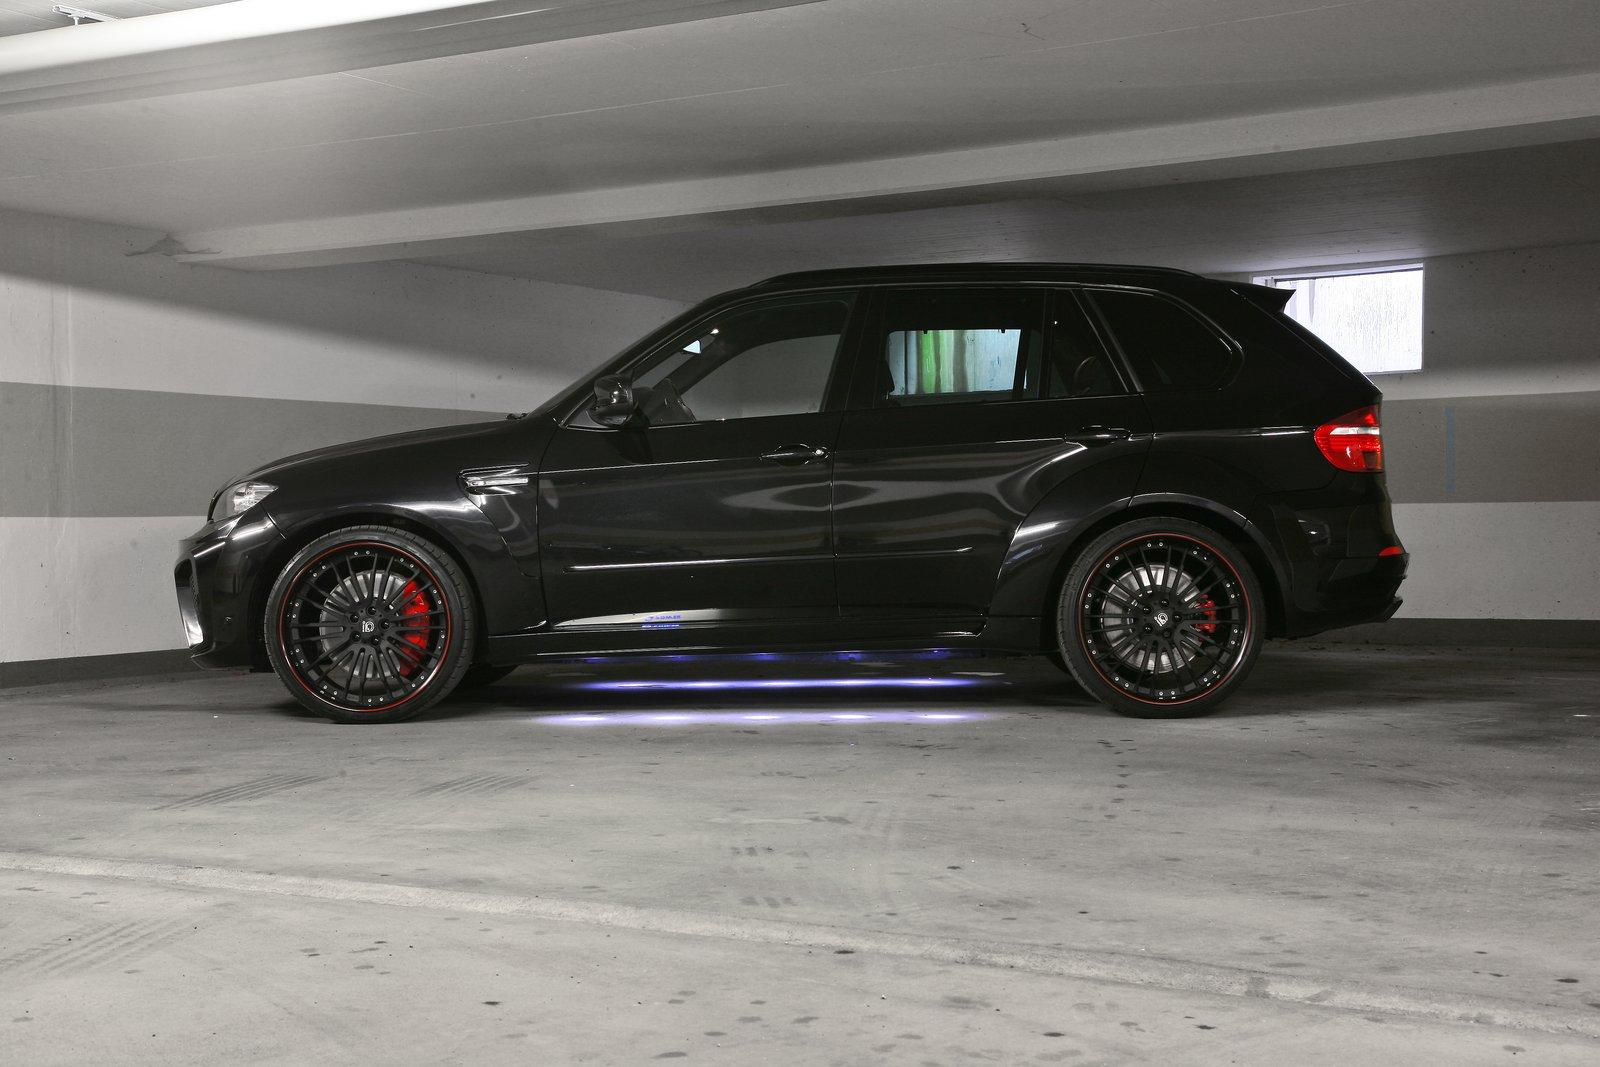 2010 bmw x5 m typhoon by g power new car used car reviews picture. Black Bedroom Furniture Sets. Home Design Ideas